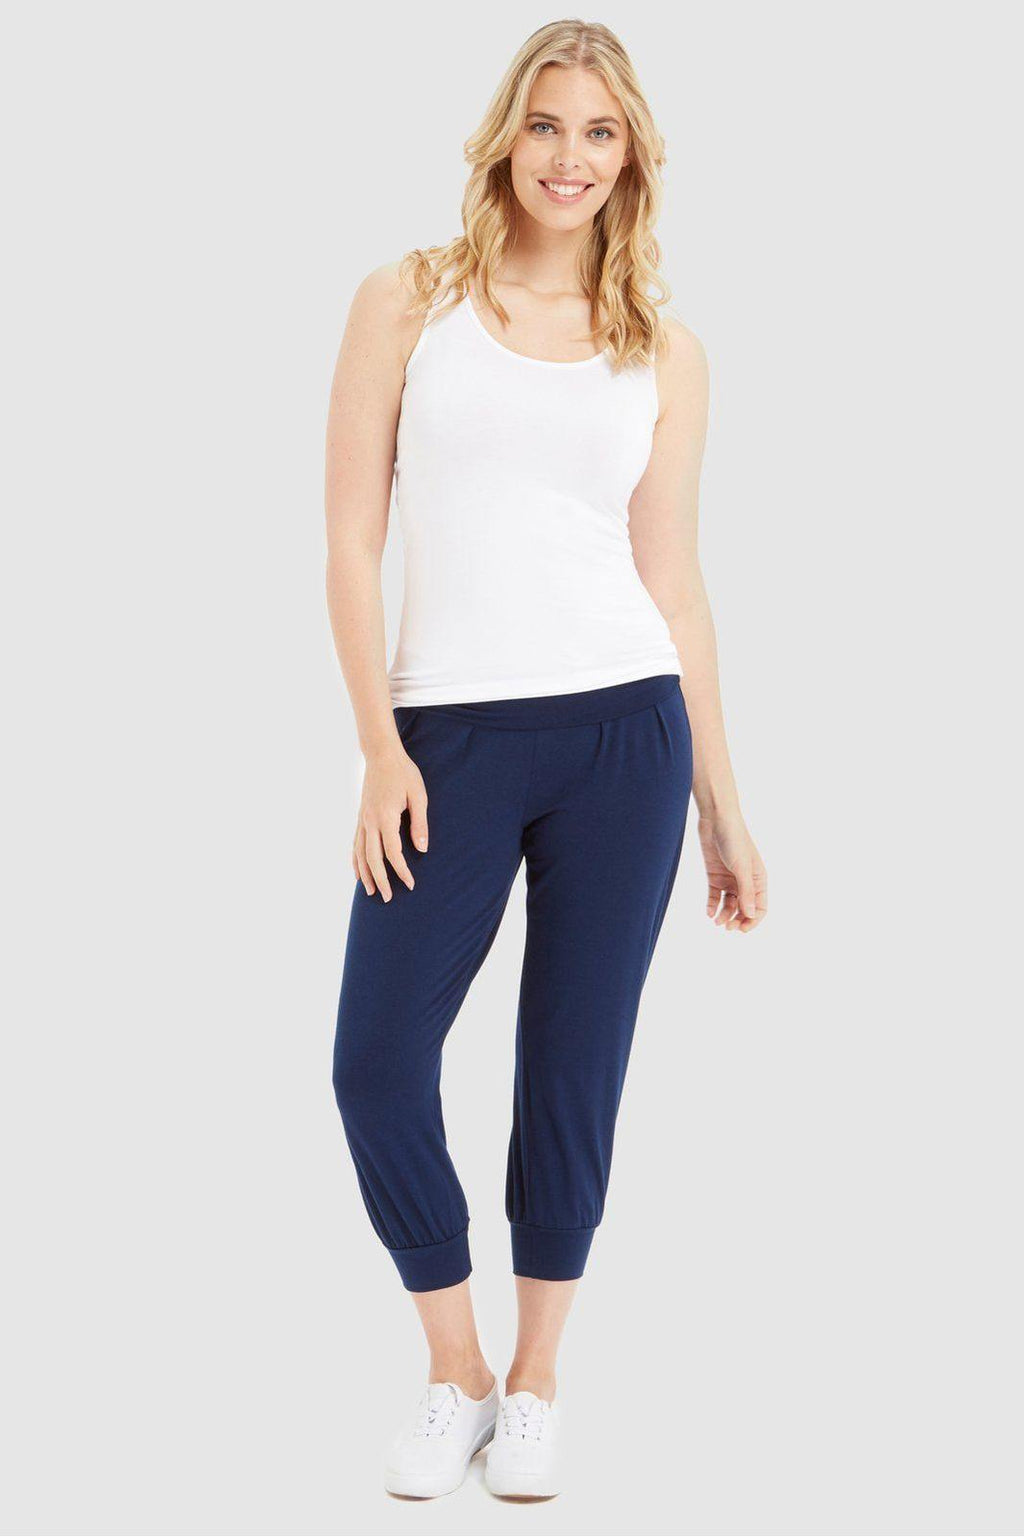 Summer Slouch Pant - Navy - Bamboo Body